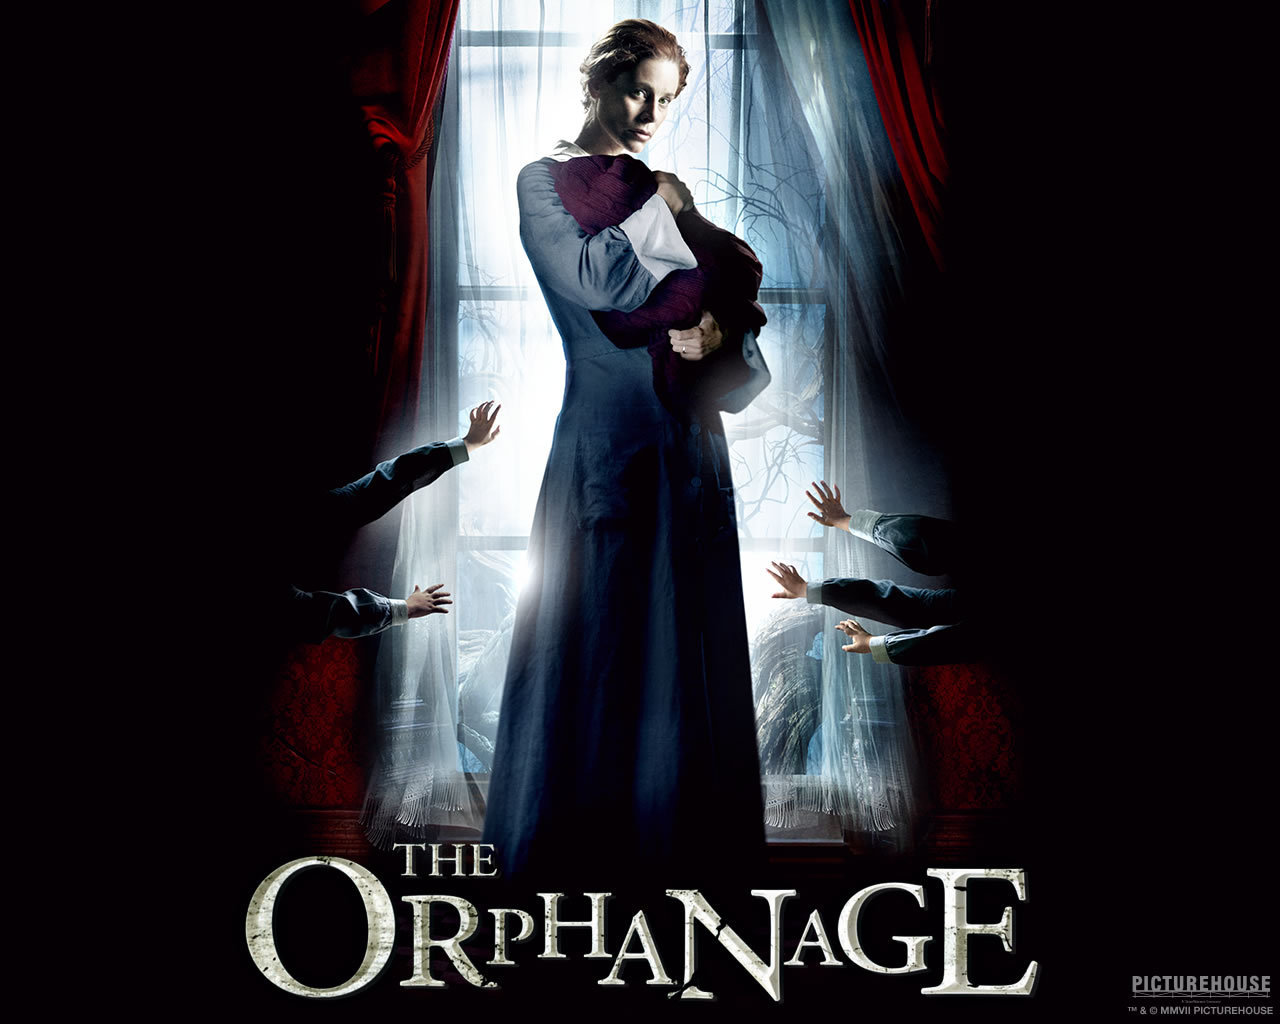 the orphanage More story than gory a hybrid of alternative horror and creepypastawelcome to the halloween edition v103 take a deep breath, dim the lights, put on your headphonesnon-linear first-person gameplay lets you explore grimhaven orphanage and discover the characters who once lived there.